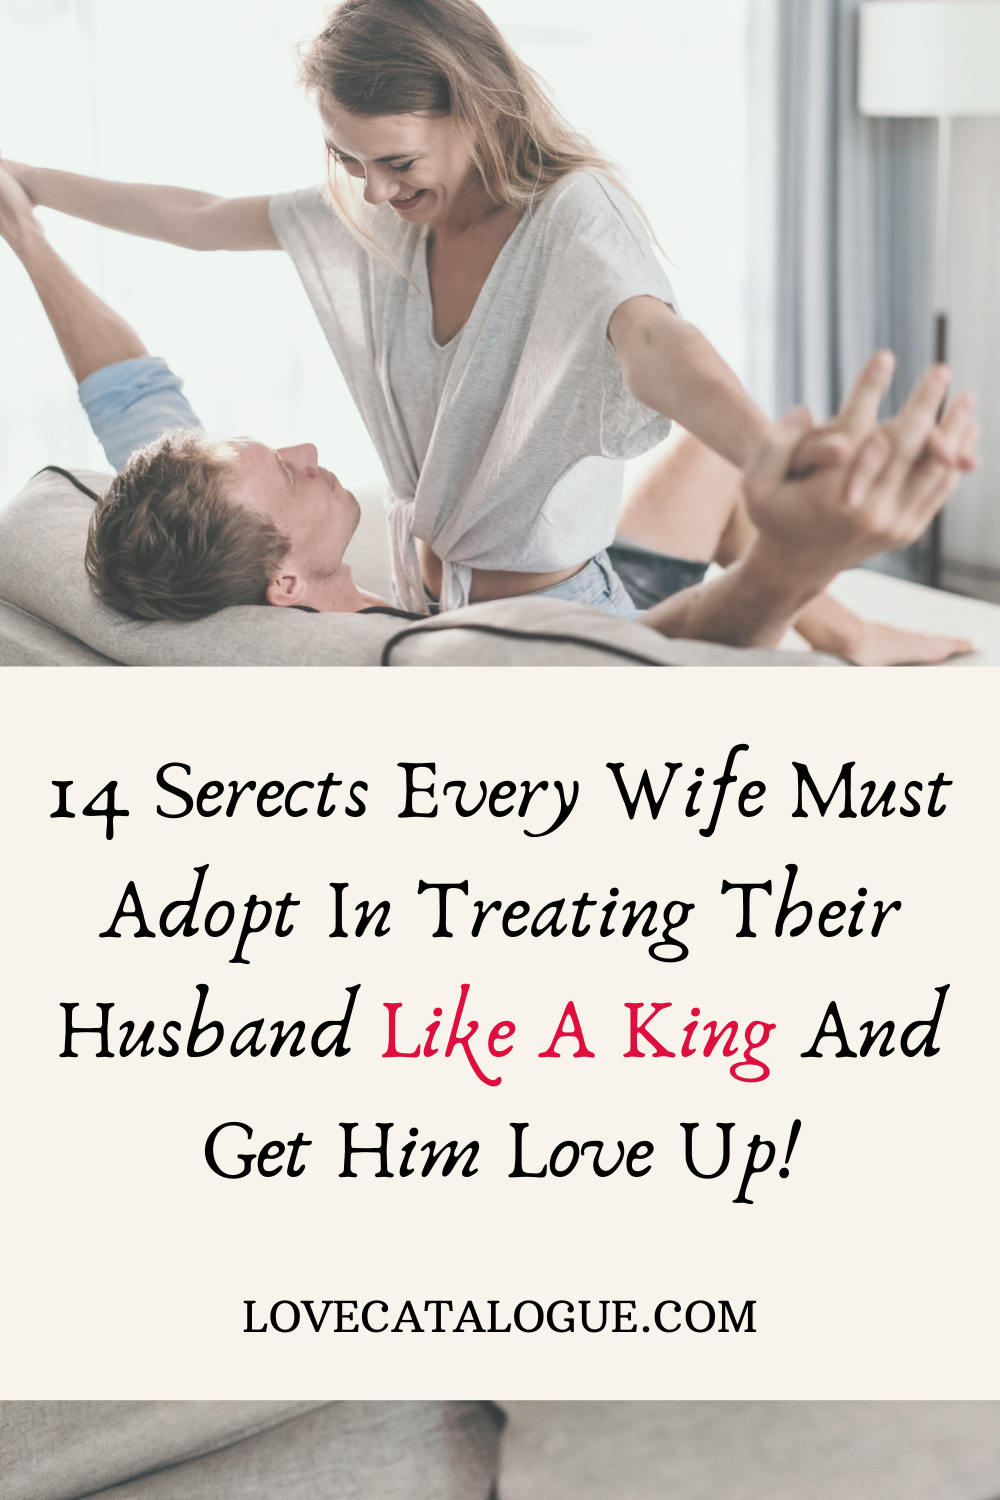 How a wife should treat her husband